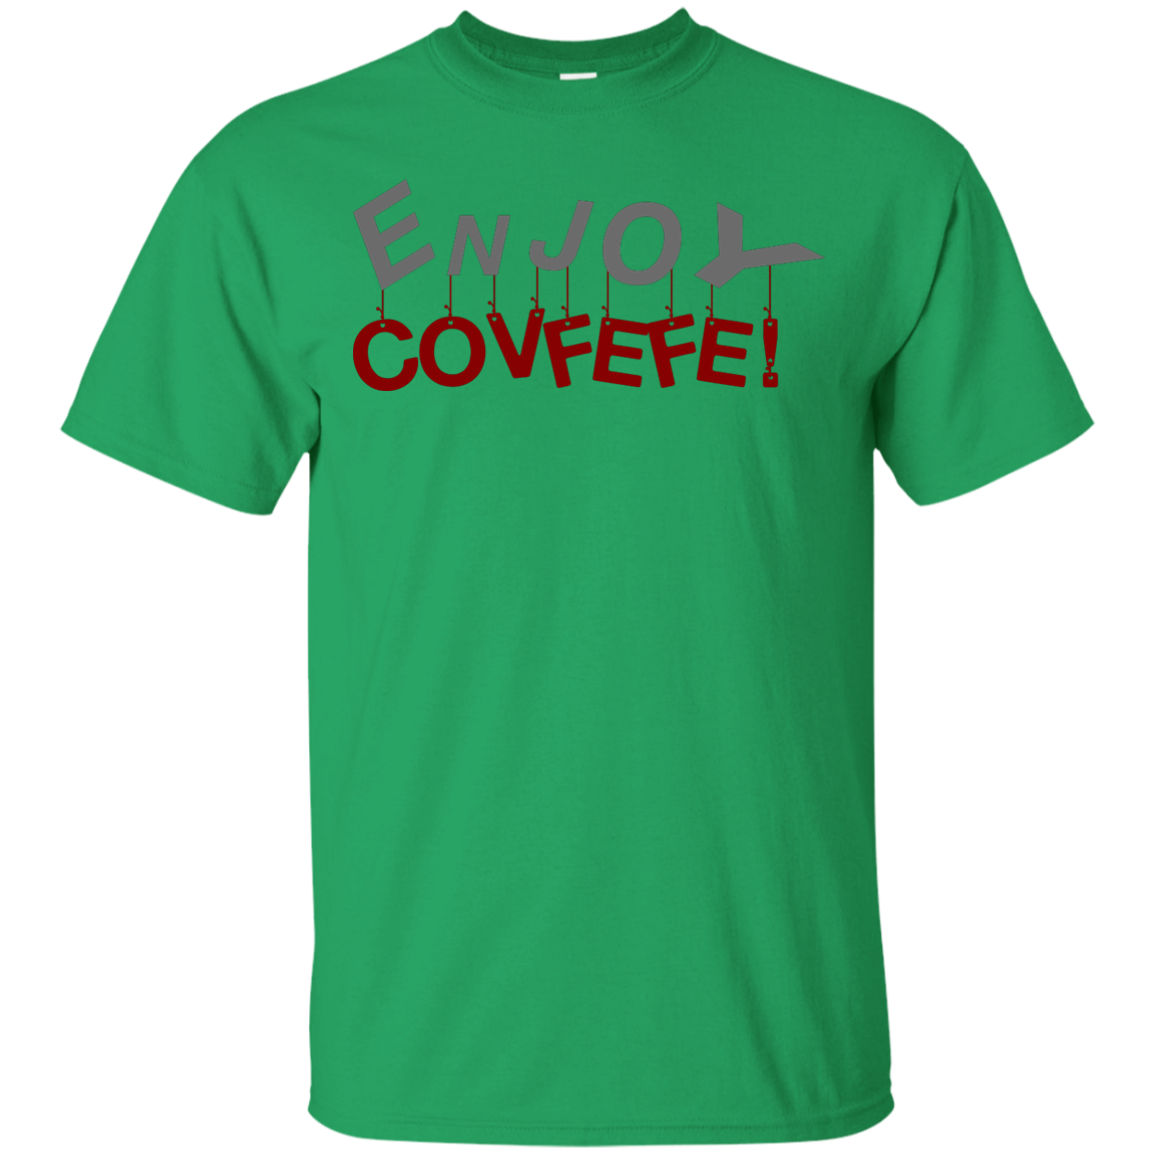 Enjoy Covfefe - T Shirt - OMG We Love It